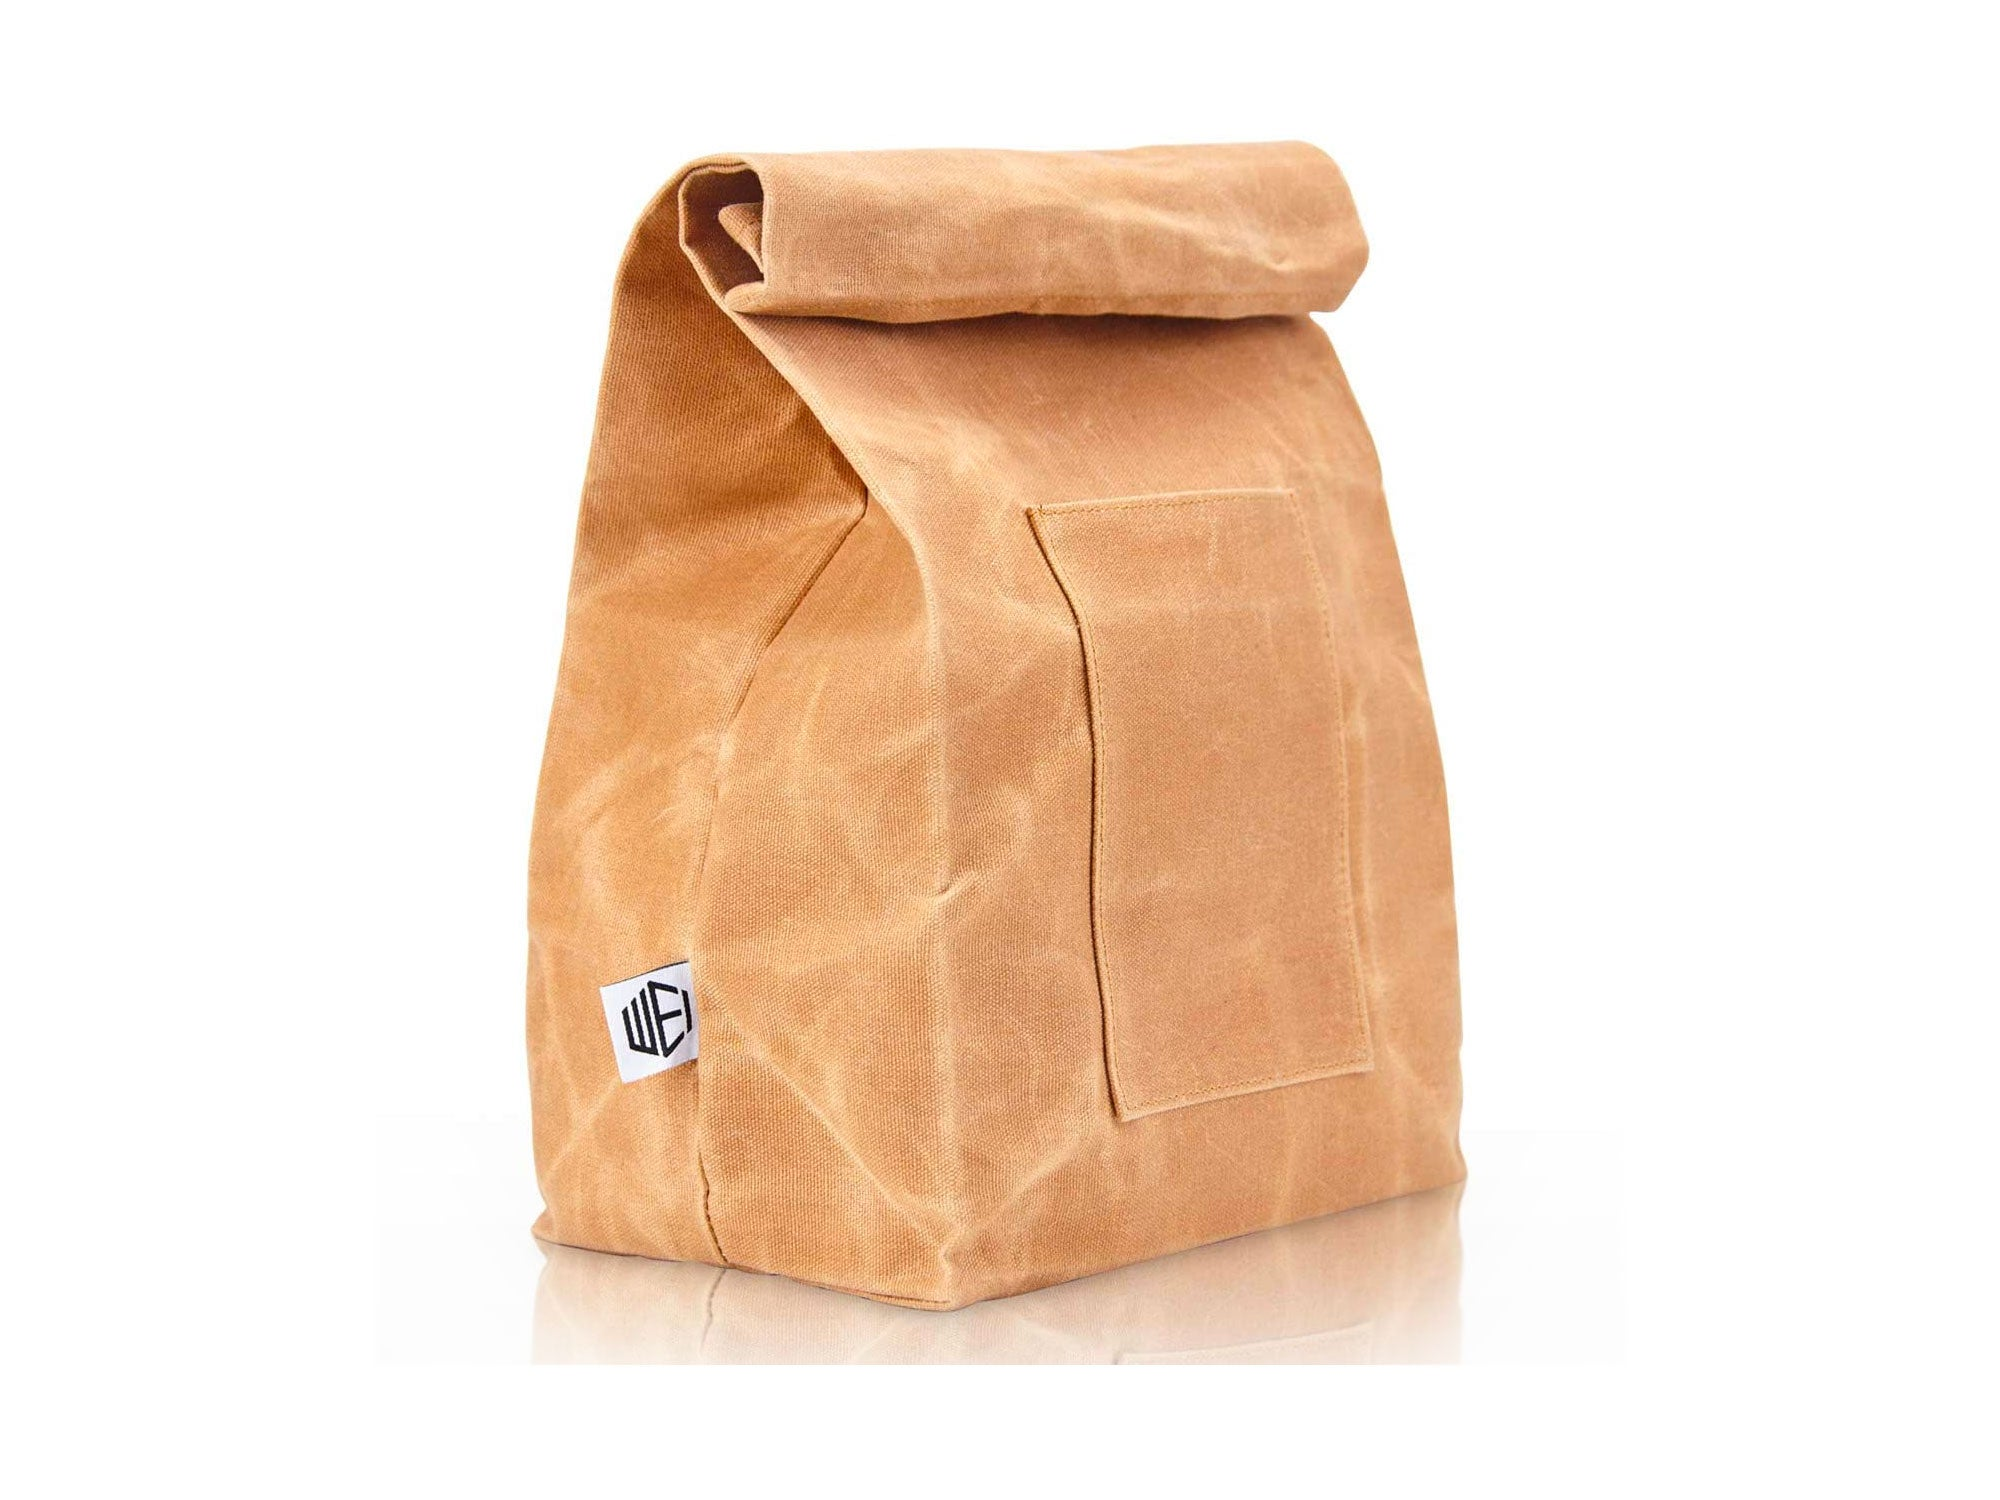 WEI CLASSIC Waxed Canvas Lunch Bag, Waterproof, Durable, Eco Friendly, Large Size Brown Paper Bag Styled, Lunch Box for Men, Women & Kids